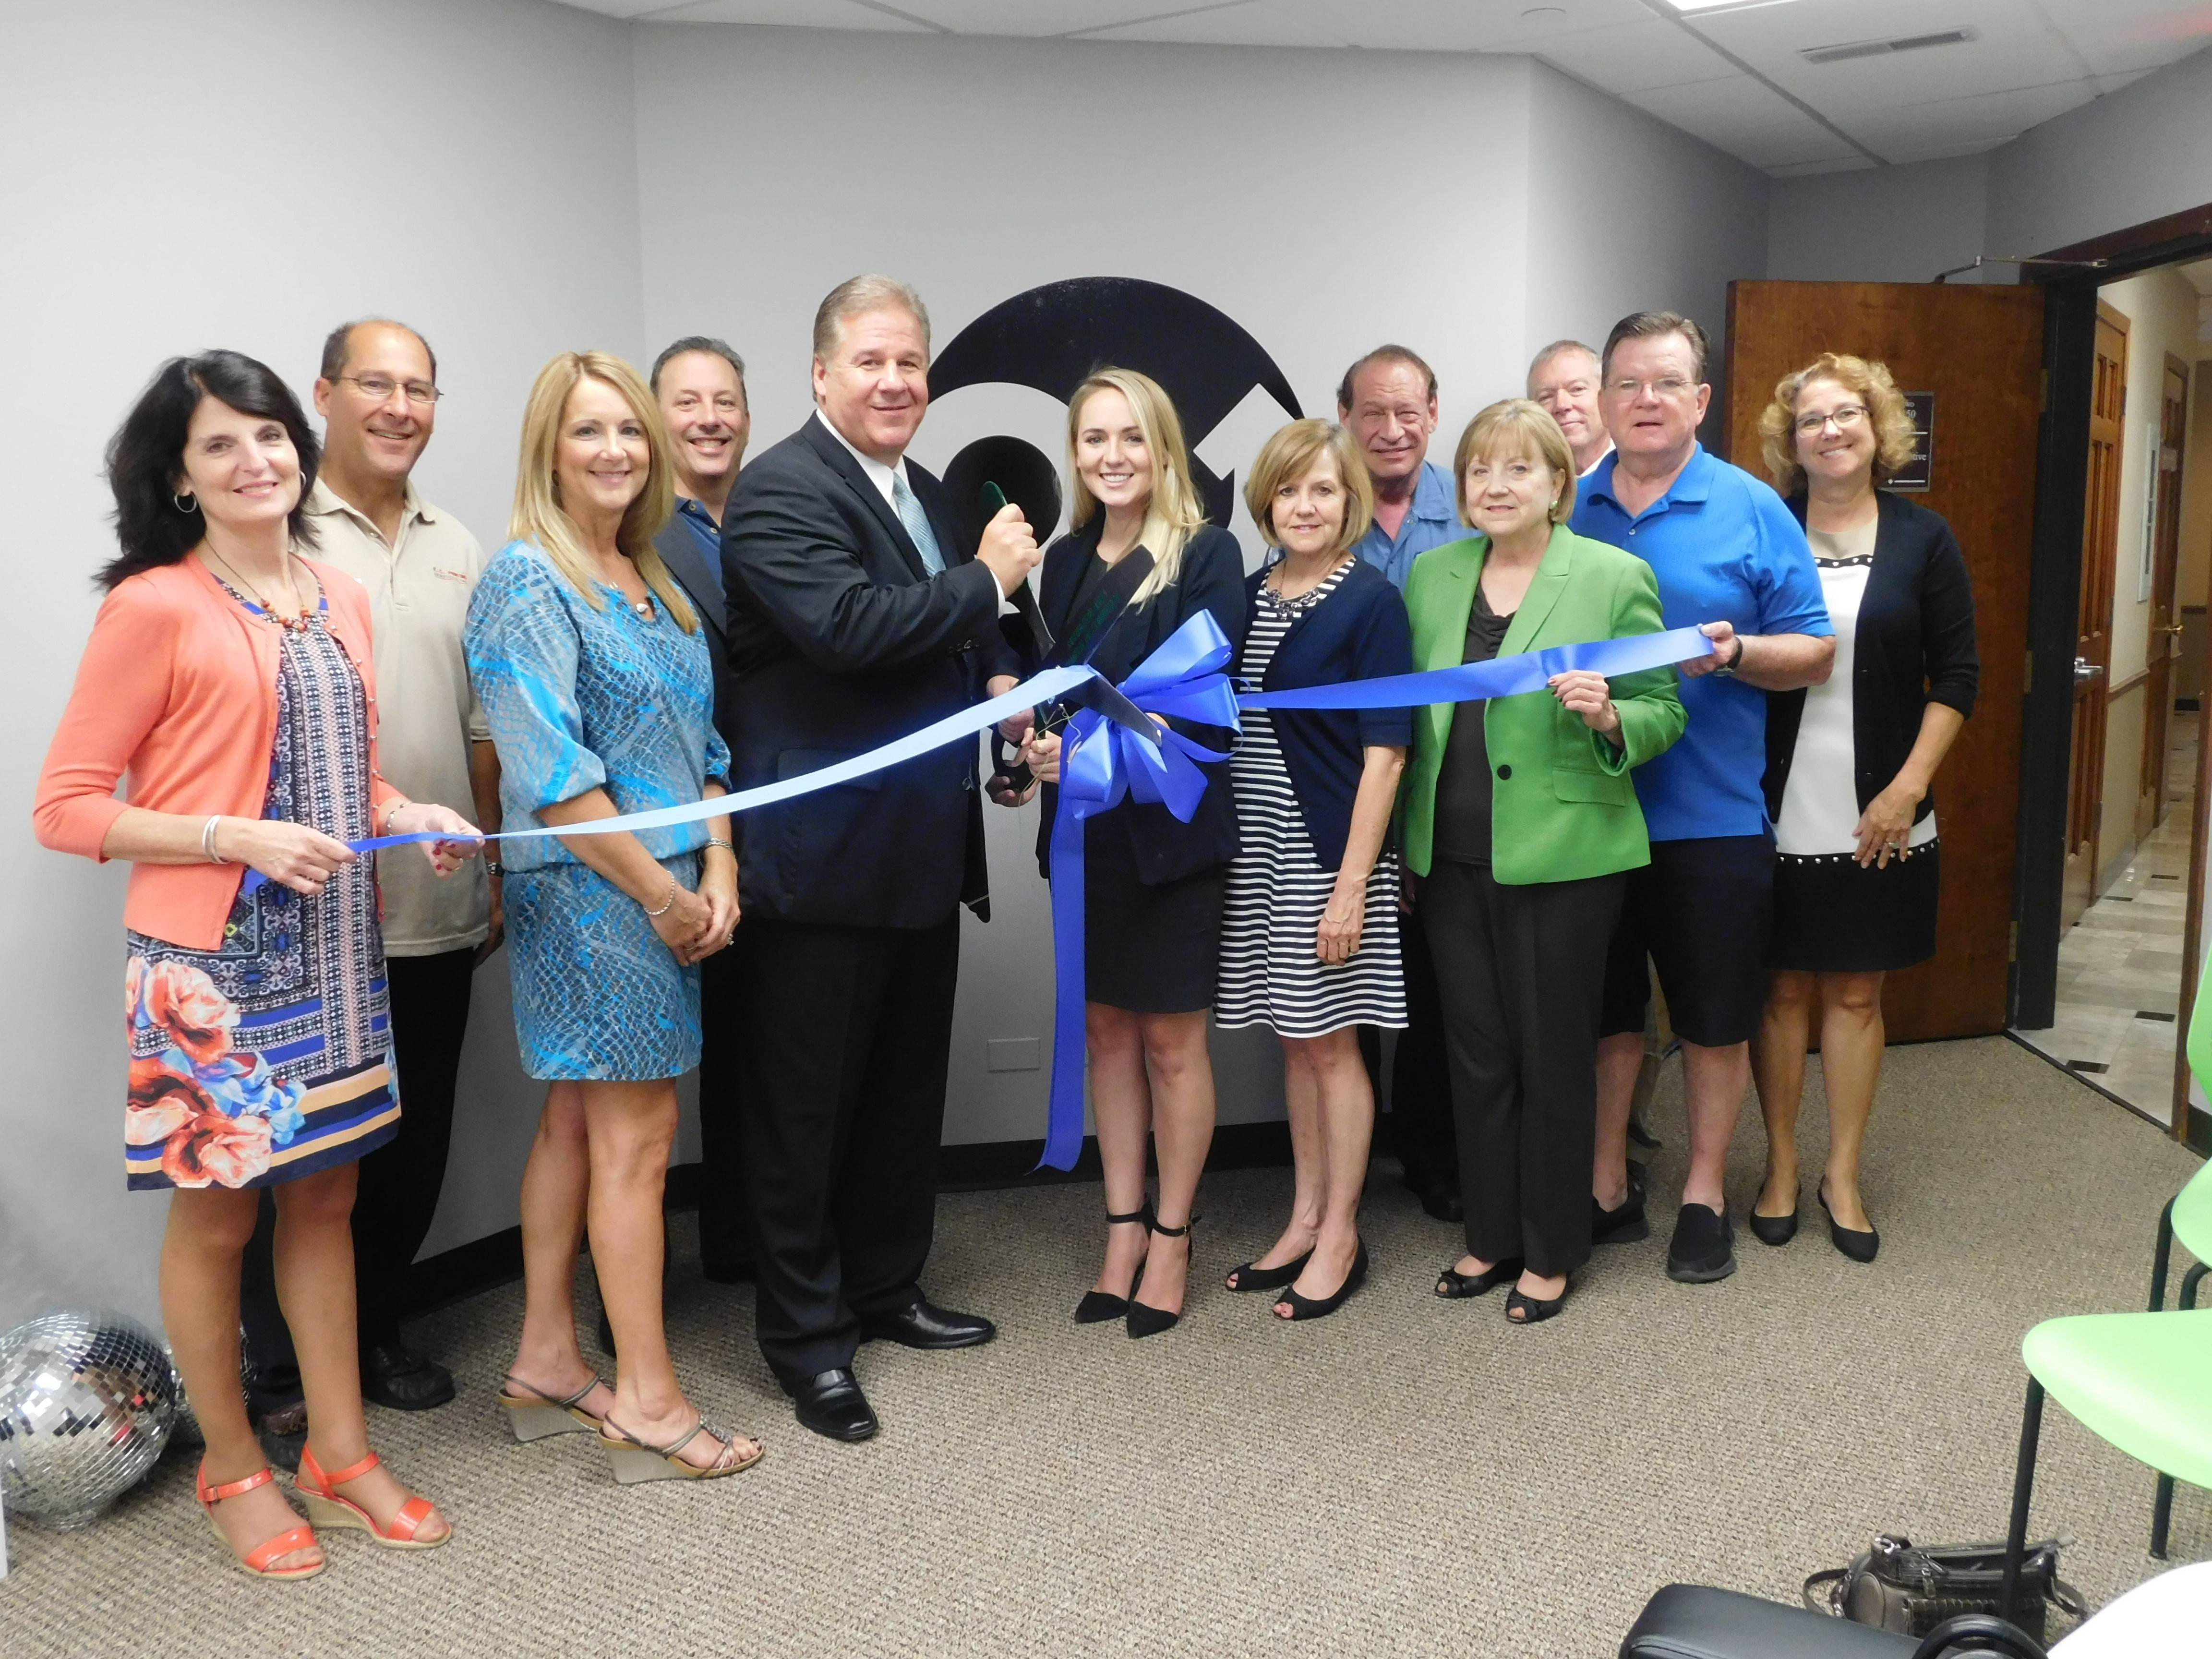 John and Jessie O'Brien, center, cut the ribbon on their OneUp Automotive Inc. business in Barrington.